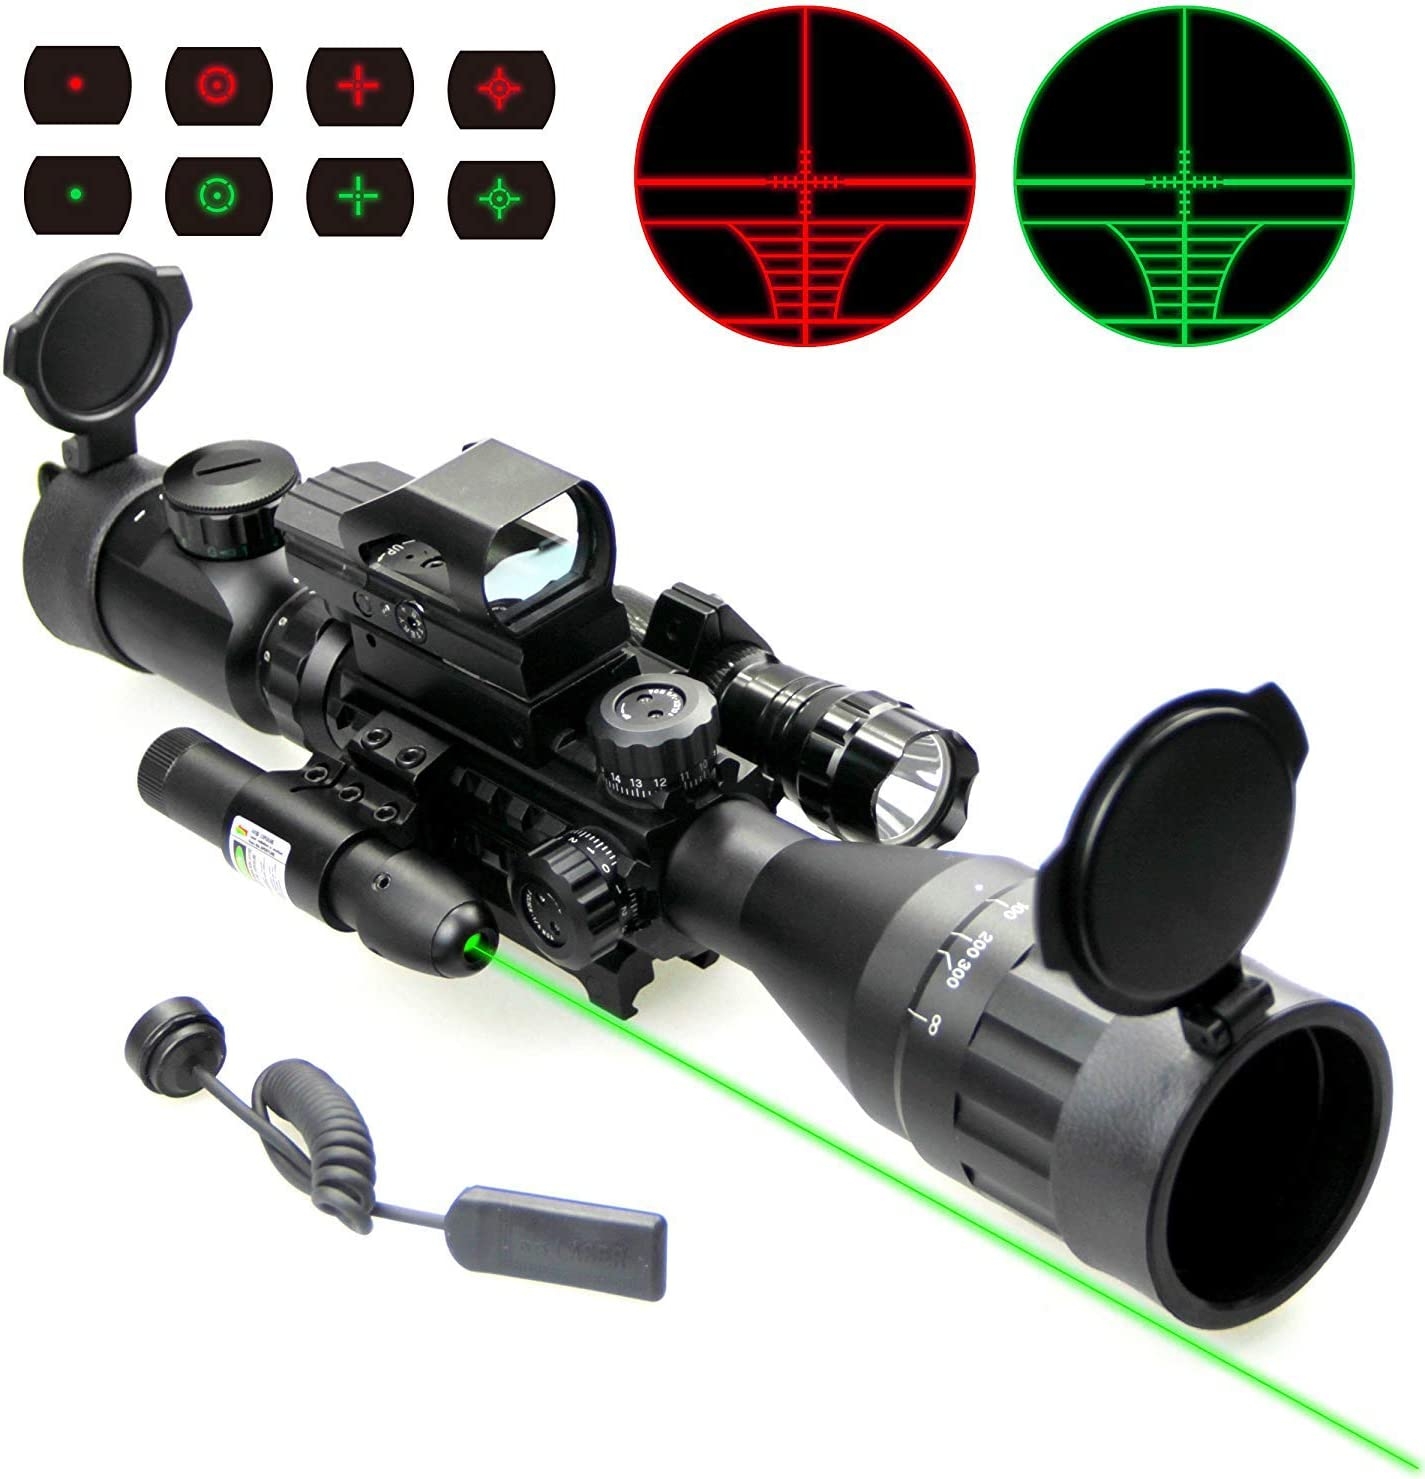 UUQ 4-16×50 Tactical Rifle Scope Red Green Illuminated Range Finder Reticle W RED Green Laser Sight and Holographic Reflex Dot Sight 4-16X50AO Green Laser 104 Dot Sight FL